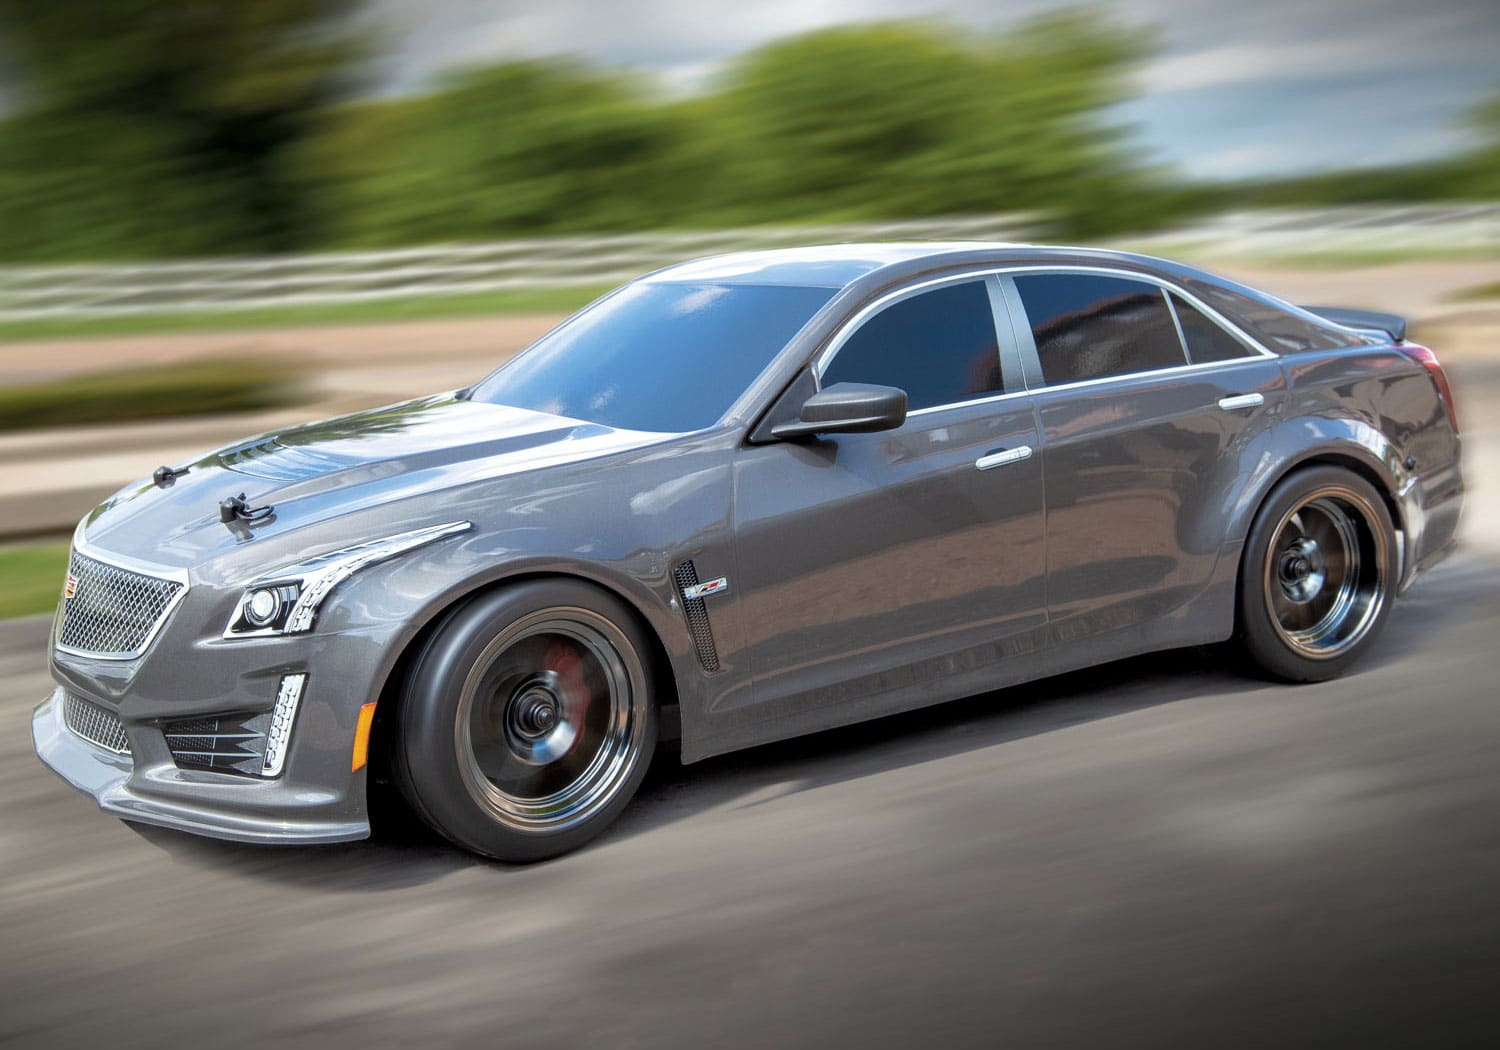 Traxxas Cadillac CTS-V Body - Silver - Motion